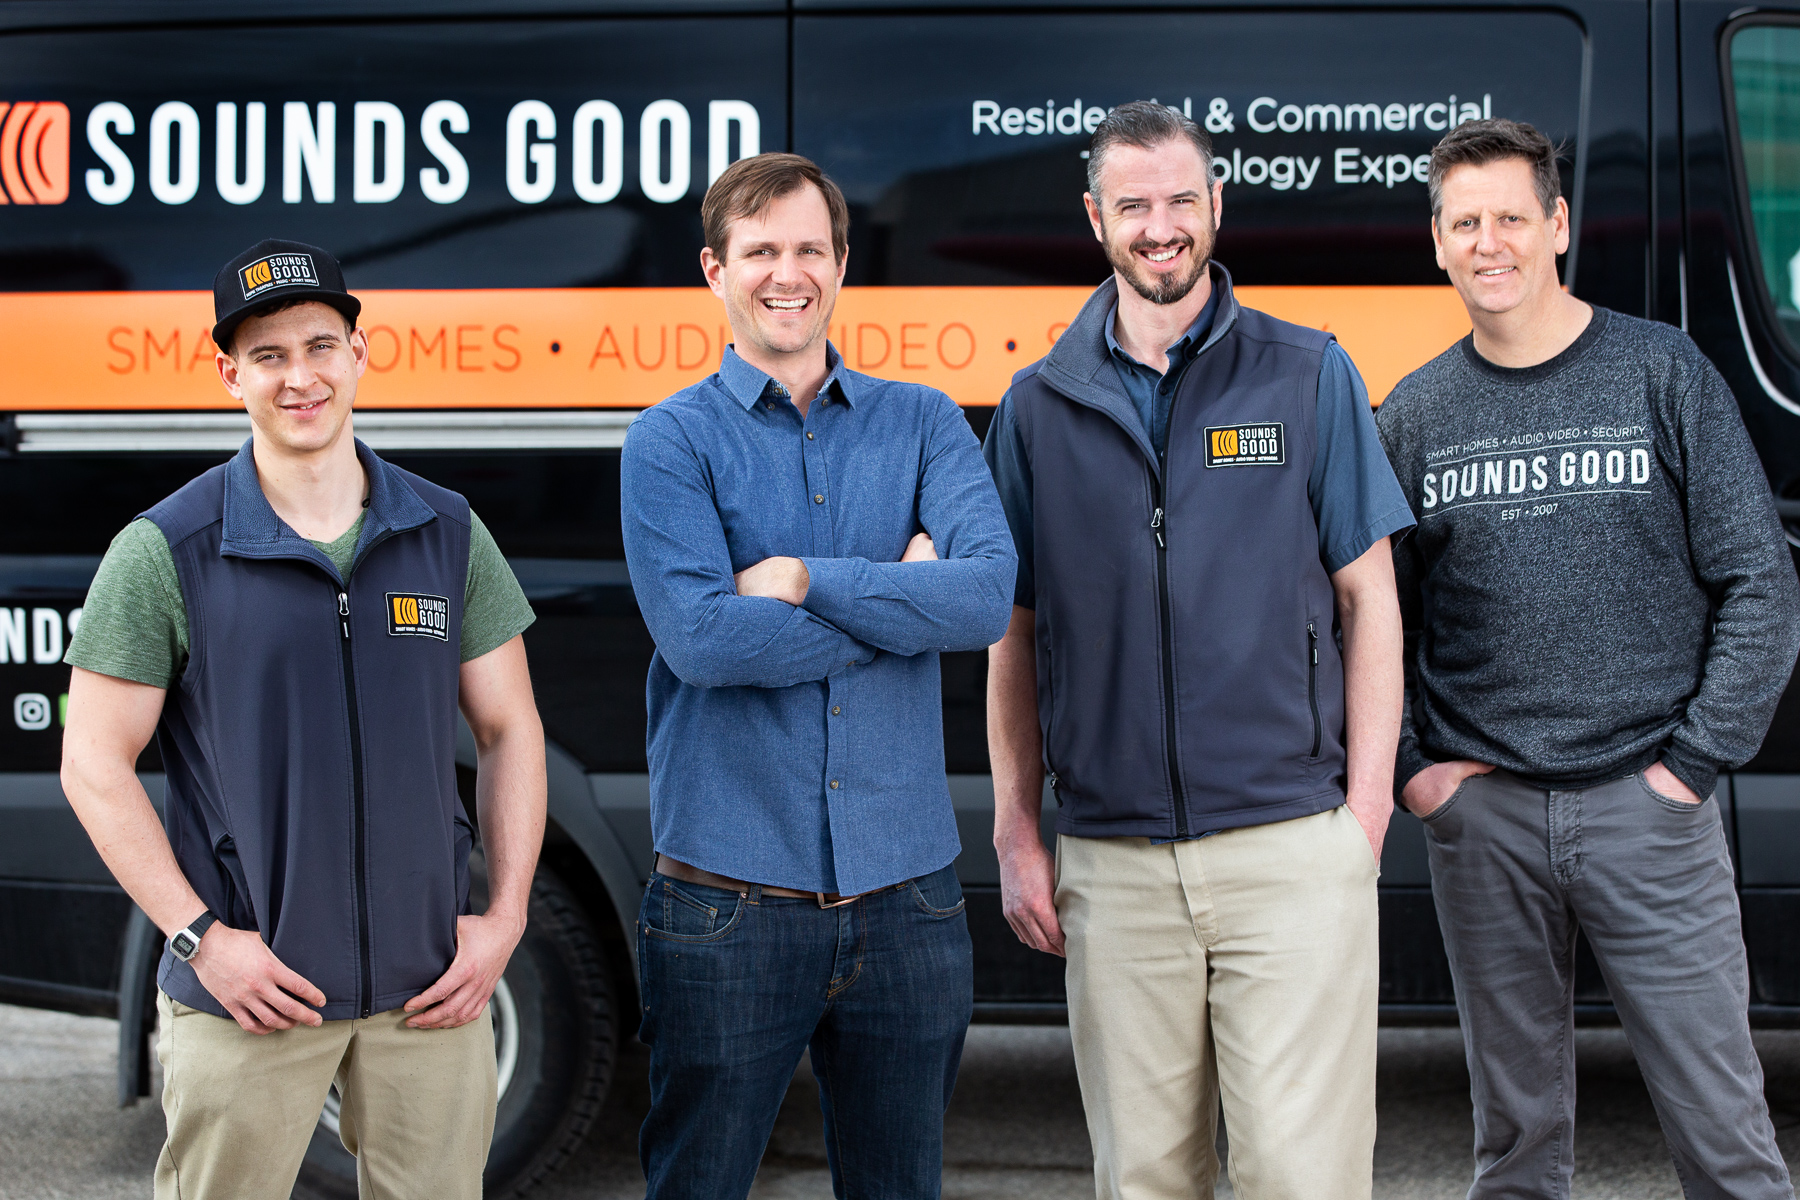 Photograph of the Sounds Good Smart Homes Team members standing in front of one of their fleet vehicles.